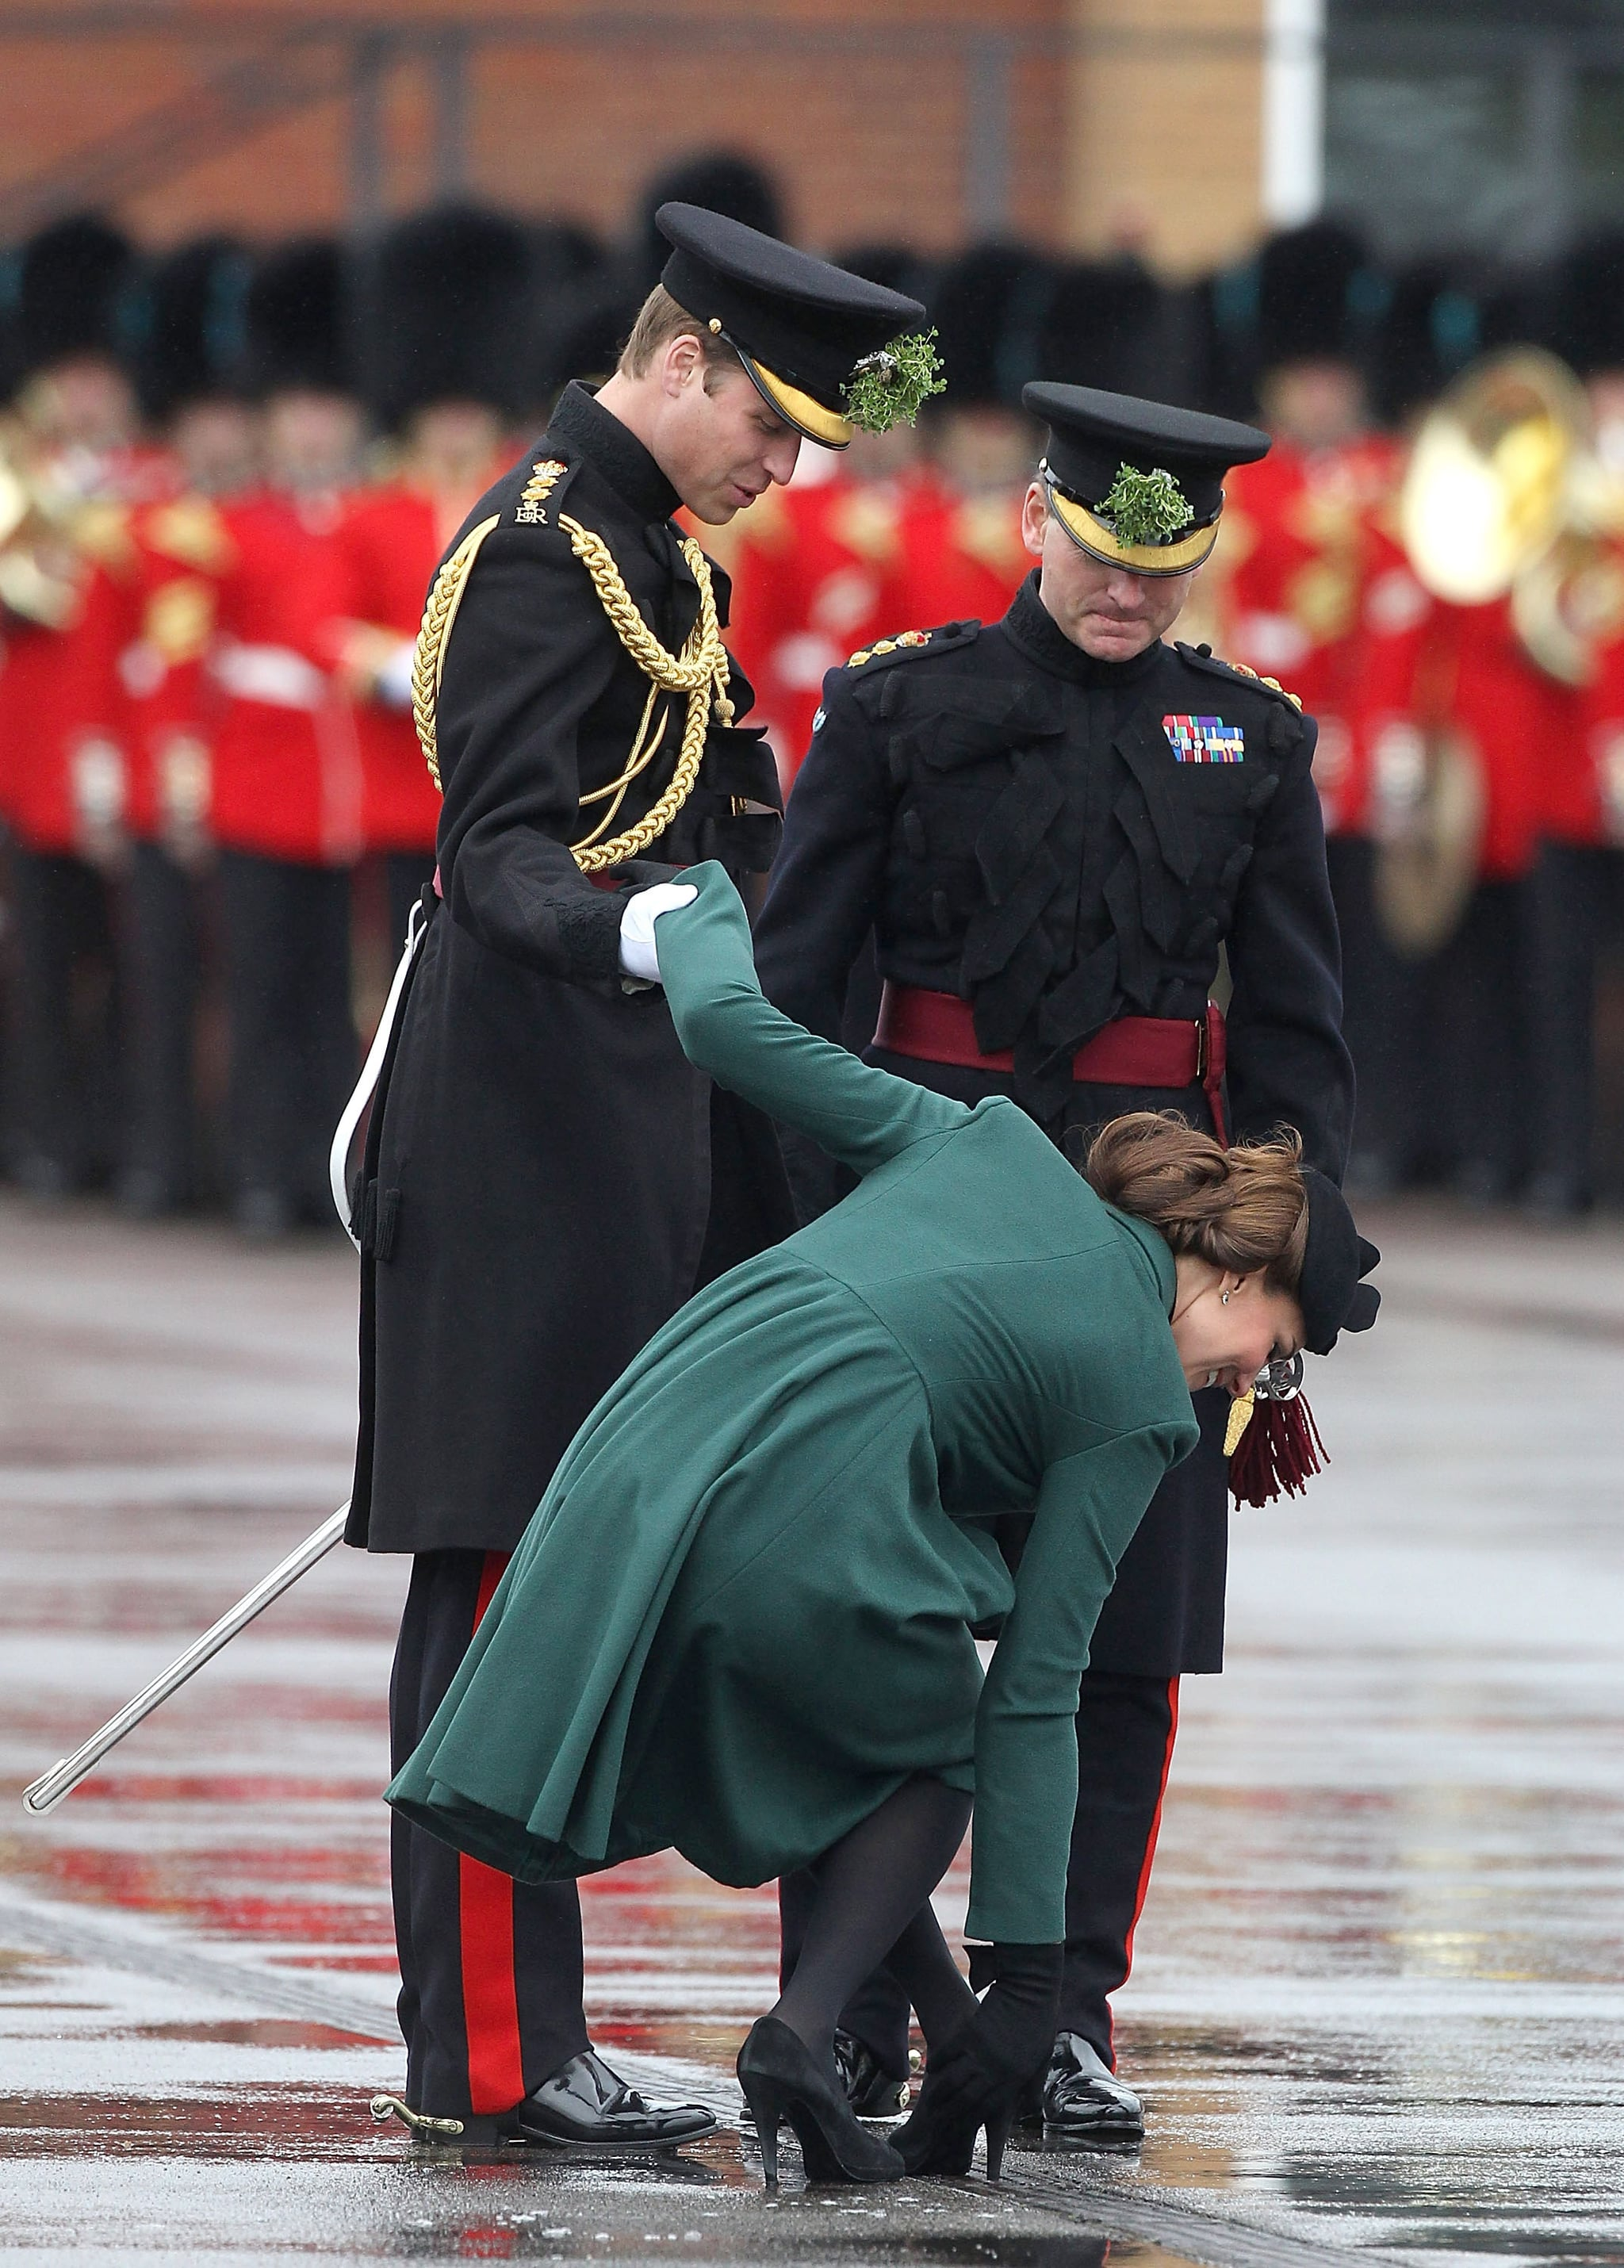 Prince William was quite the gentleman helping Kate with her shoe in March 2013 in England.